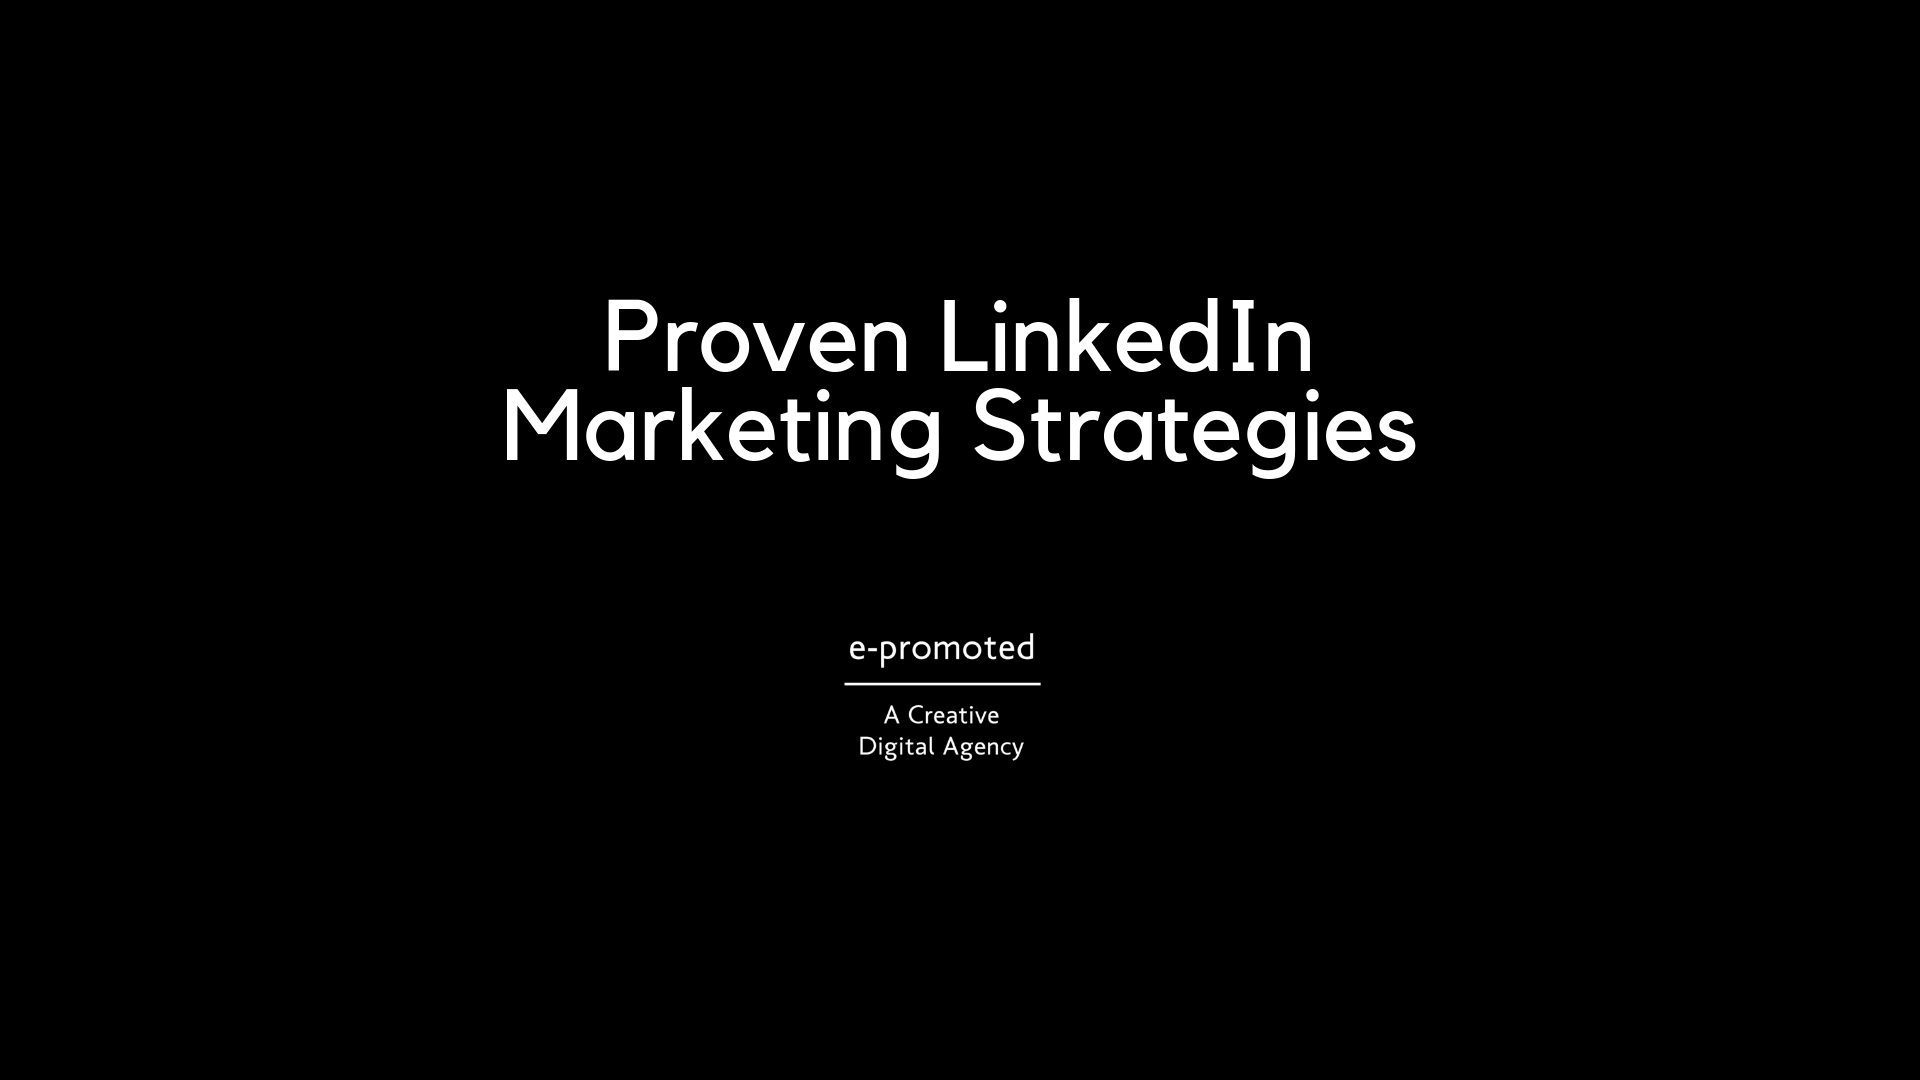 Proven LinkedIn Marketing Strategies